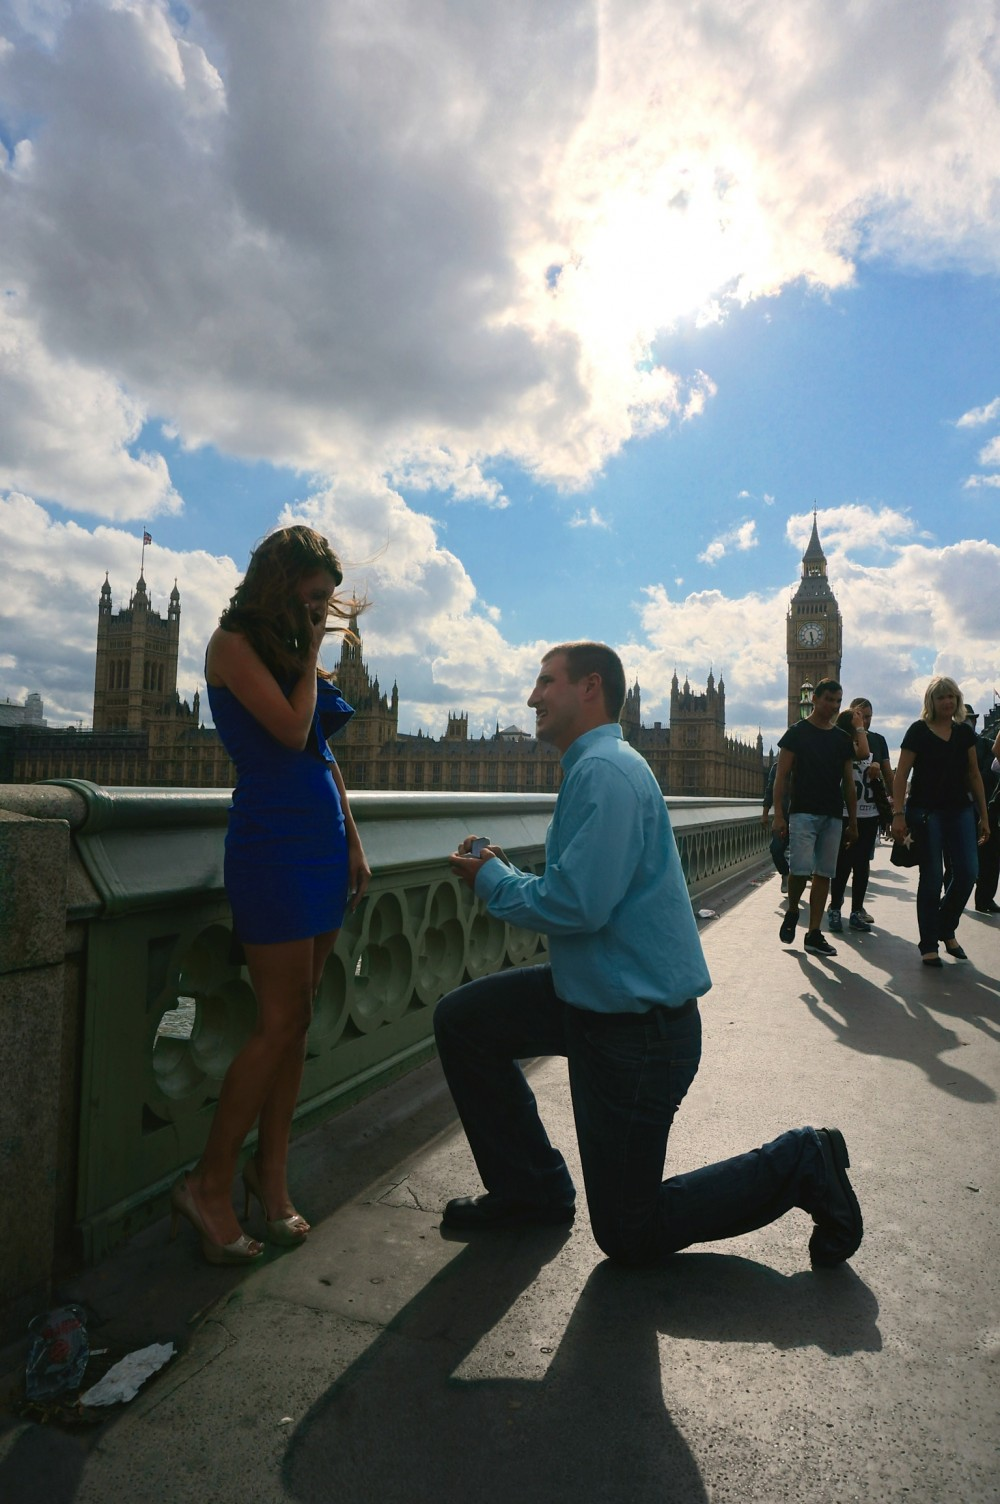 Image 3 of Brittany and Ben's London Proposal